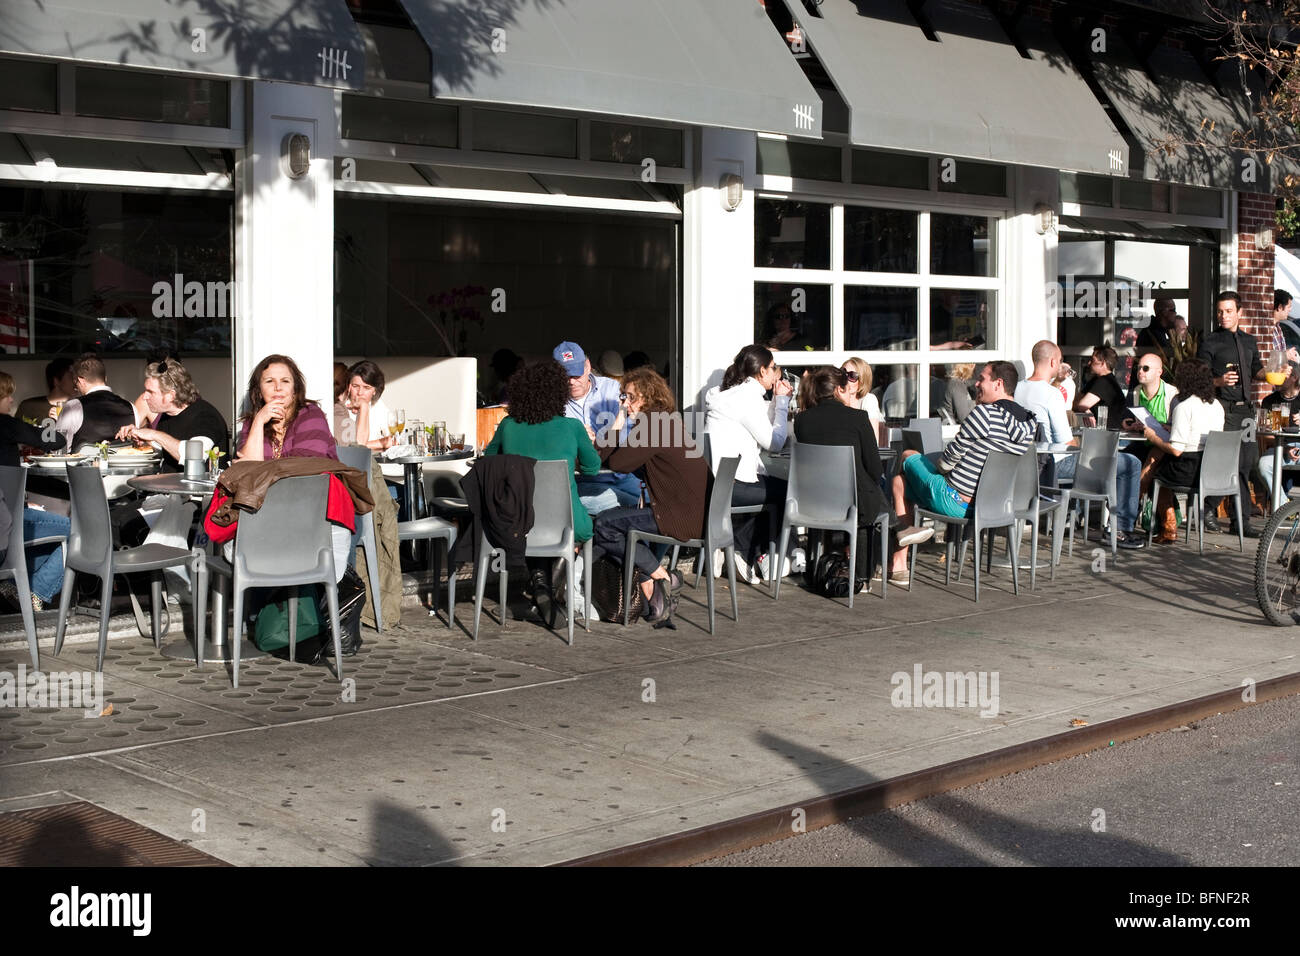 varied group New Yorkers eating Sunday brunch at outdoor tables seating at Ninth Avenue sidewalk cafe in Hells Kitchen - Stock Image